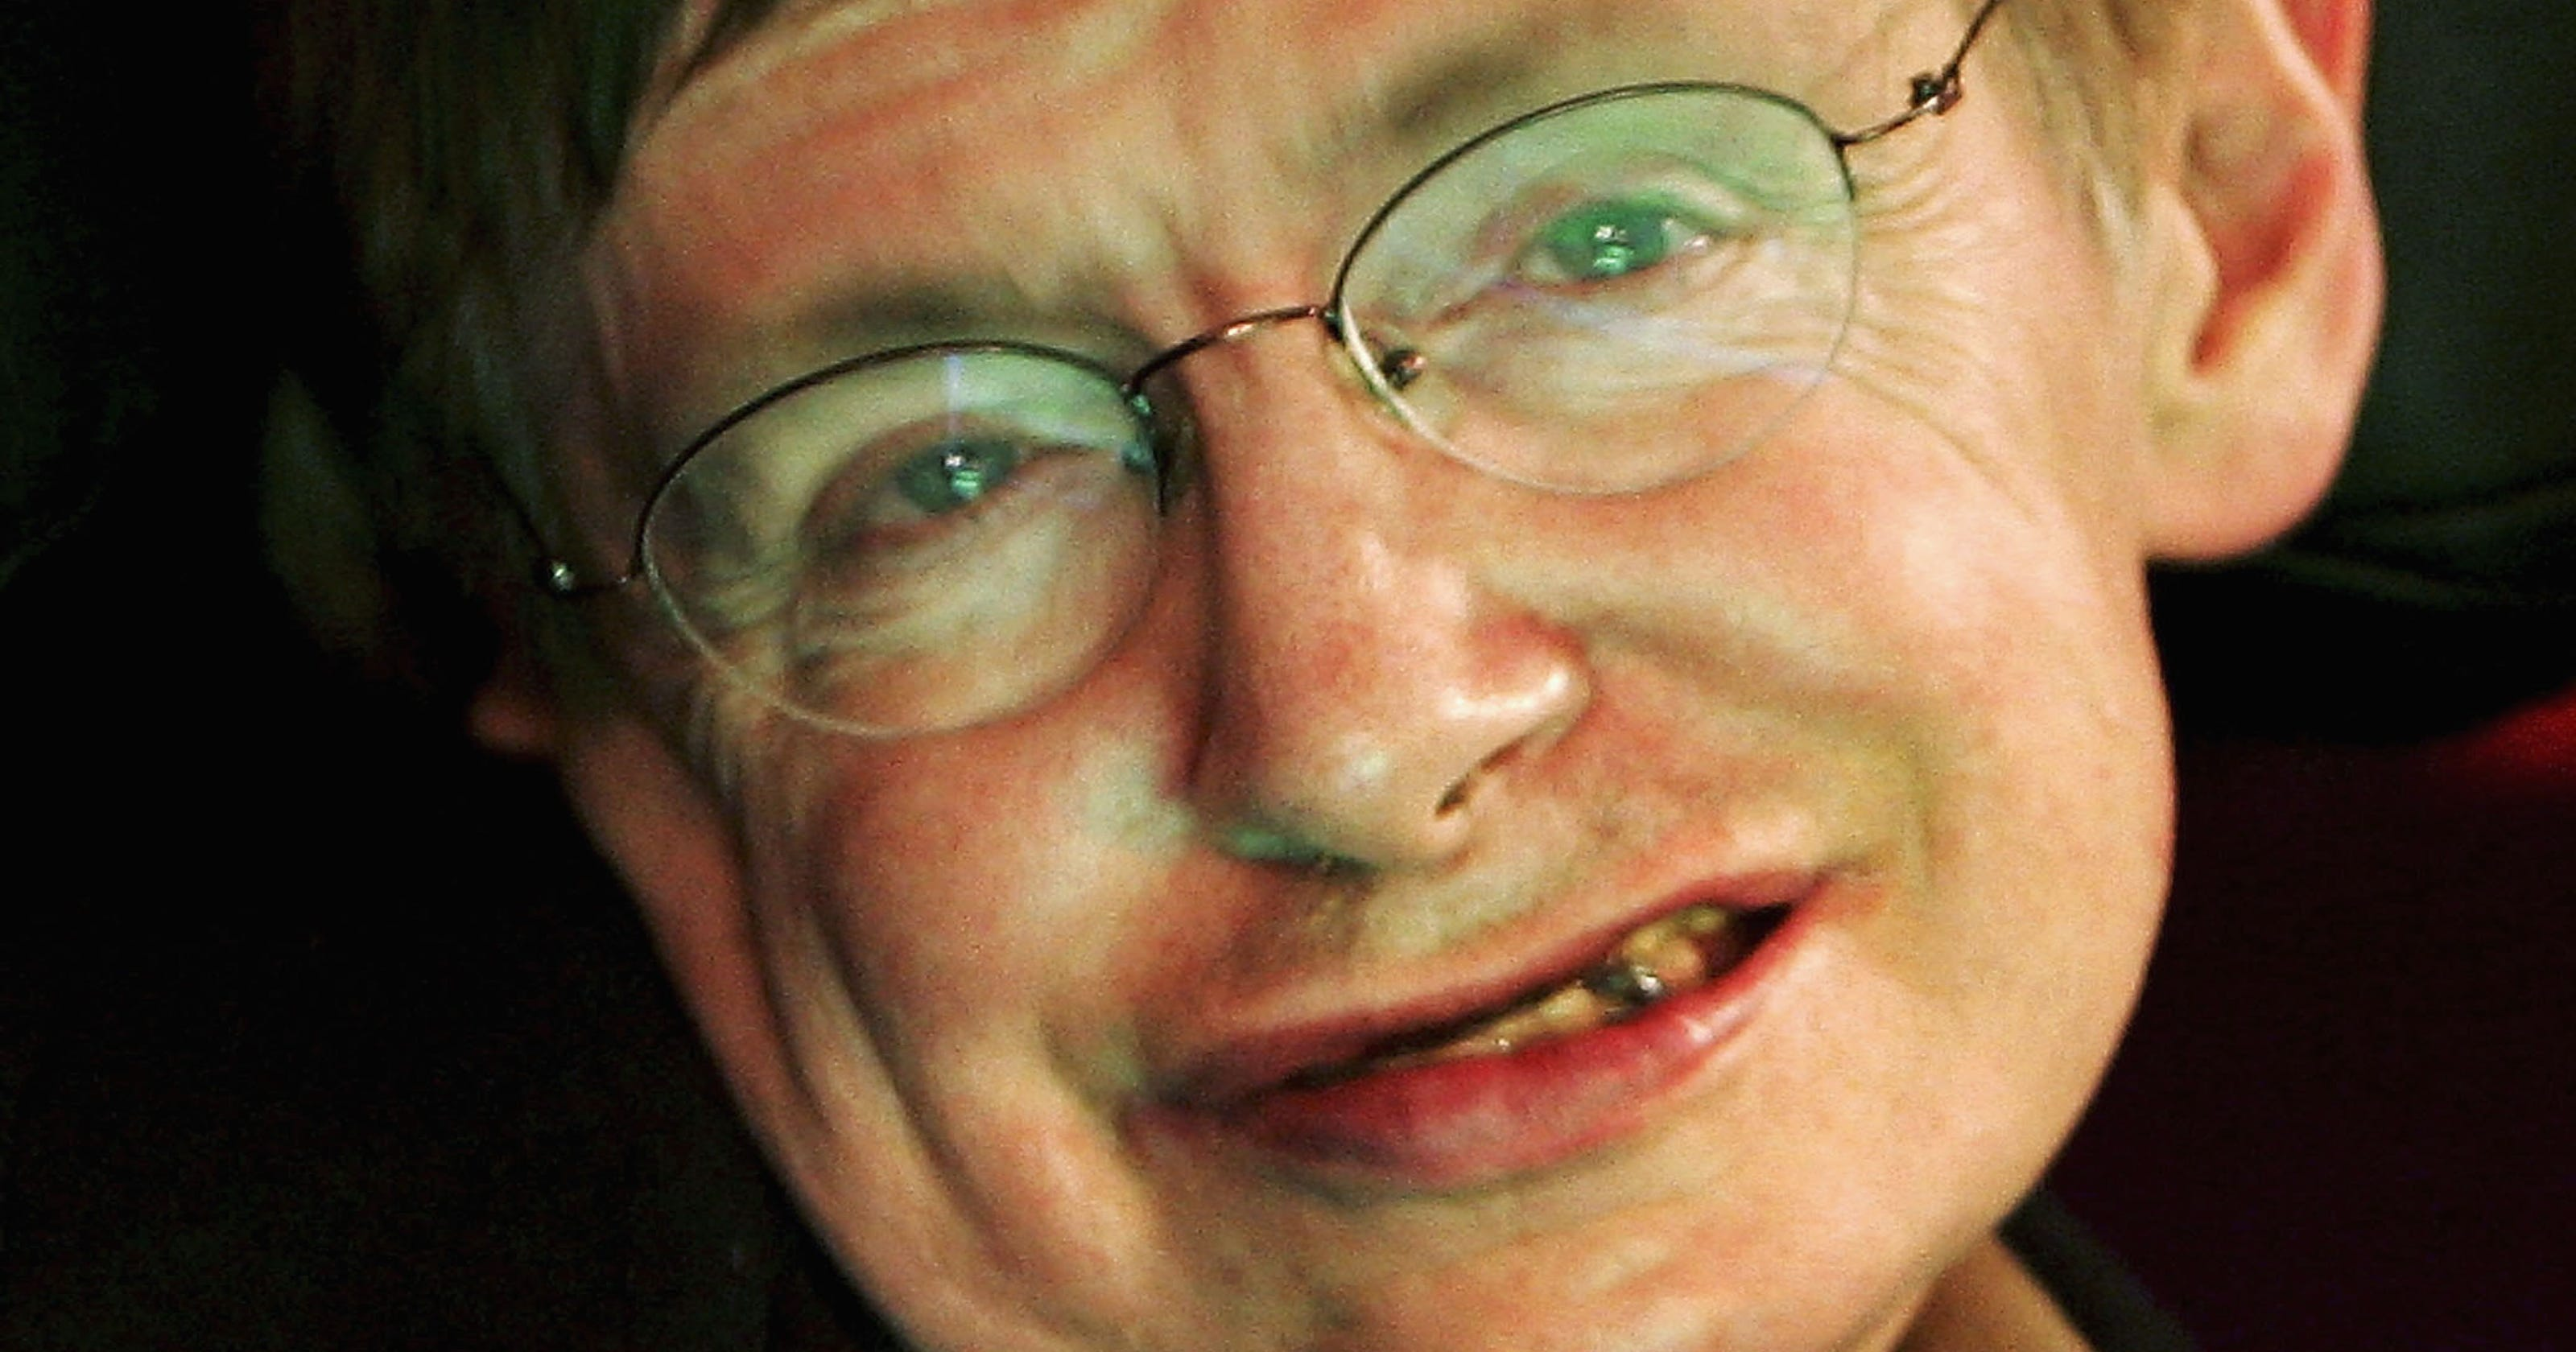 I have been lucky': Stephen Hawking's inspiring outlook on